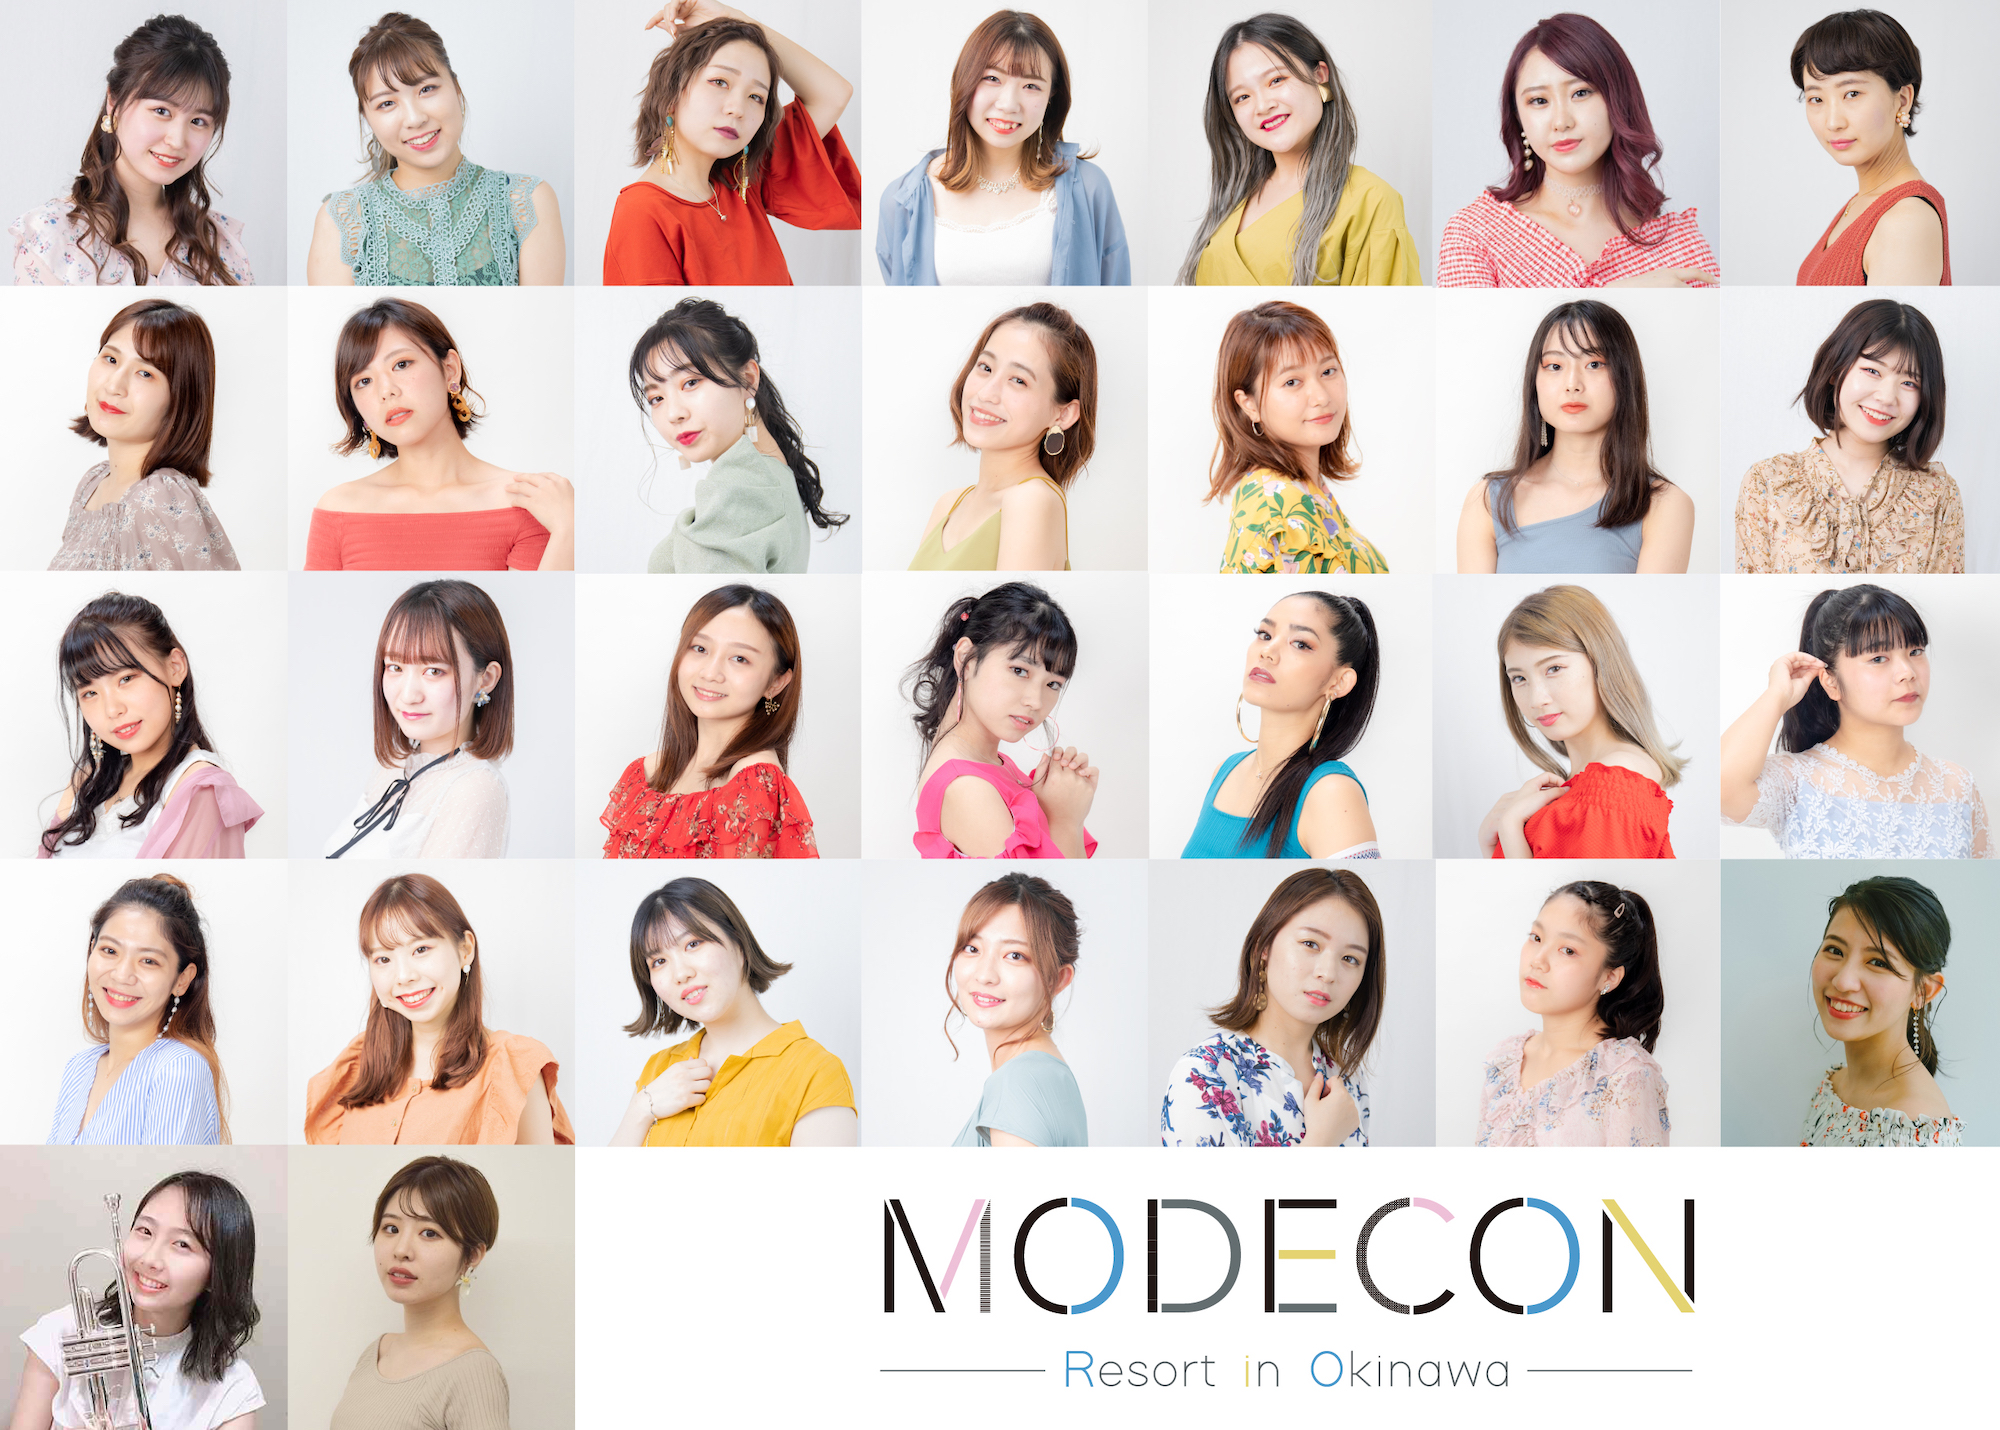 「MODECON Resort in Okinawa」全受賞者